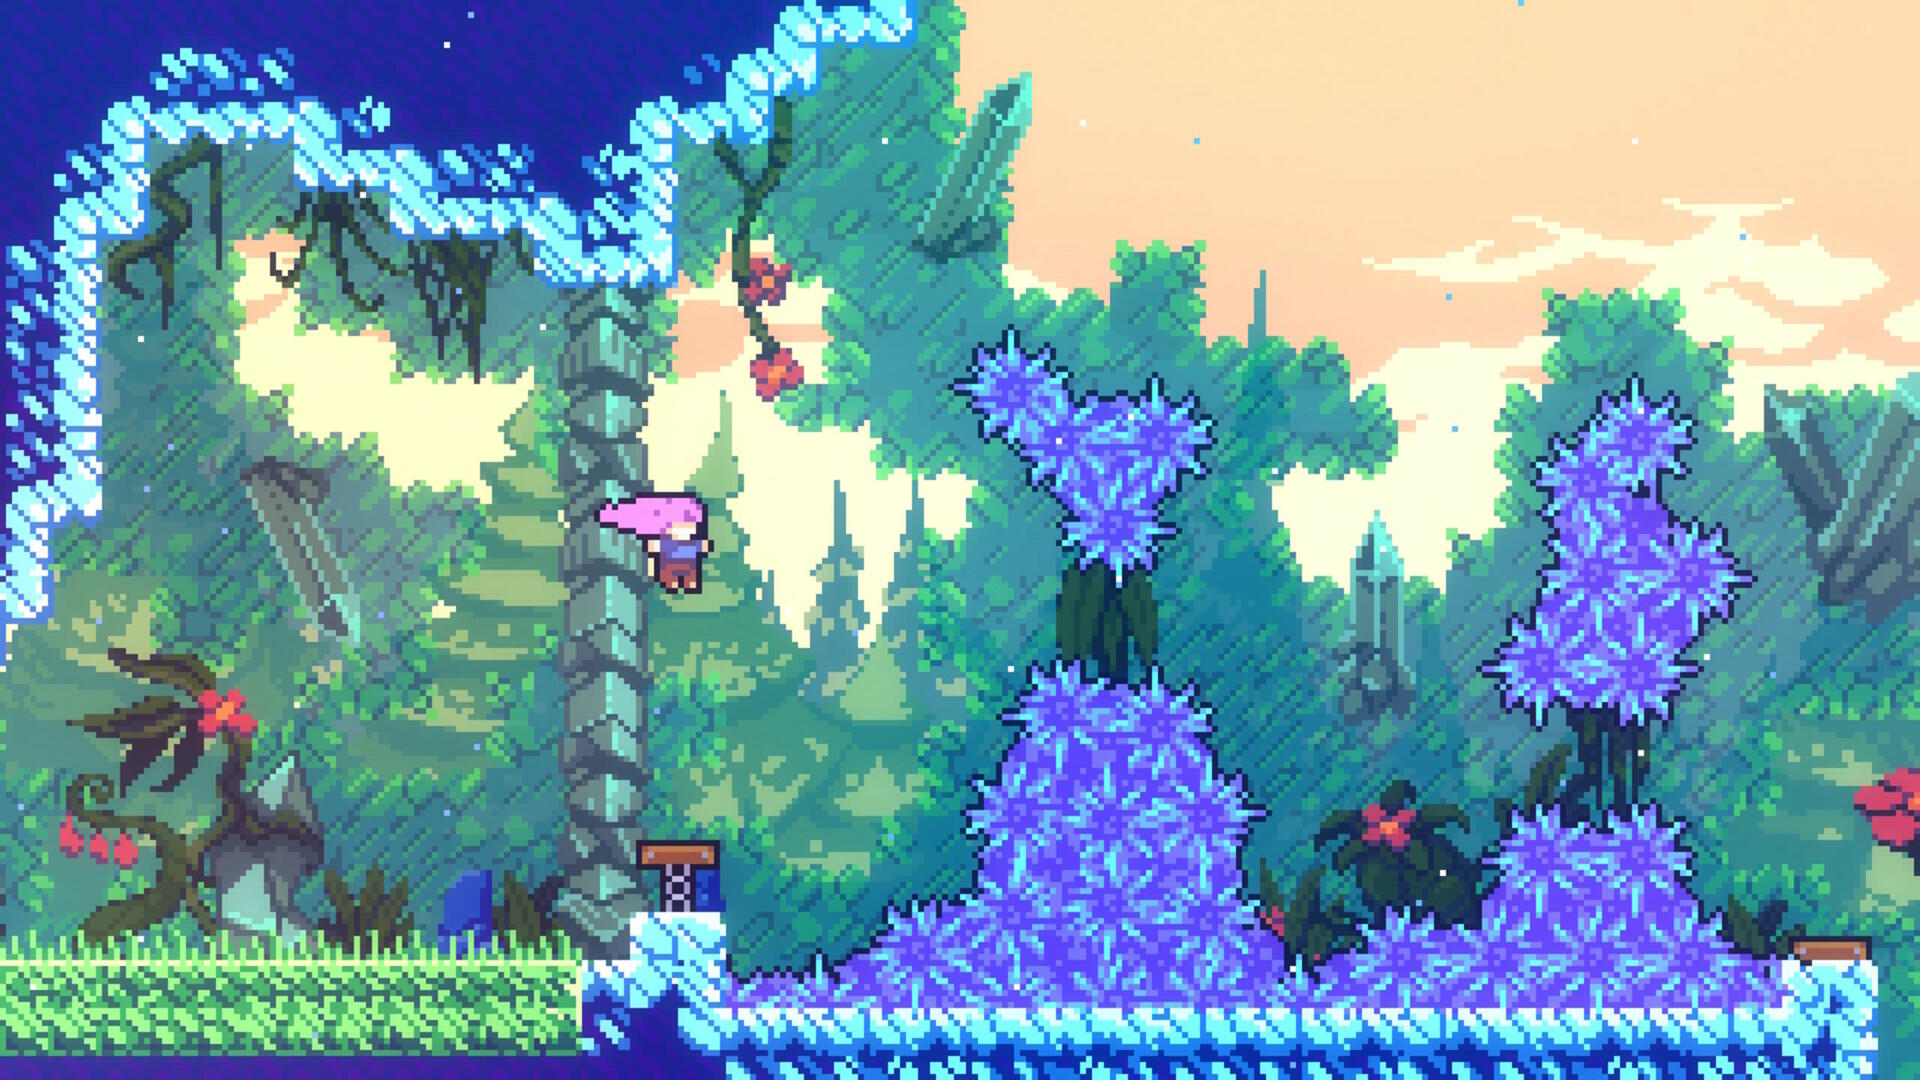 Celeste Features a Really Cool, Deliberate Design Choice Regarding Difficulty